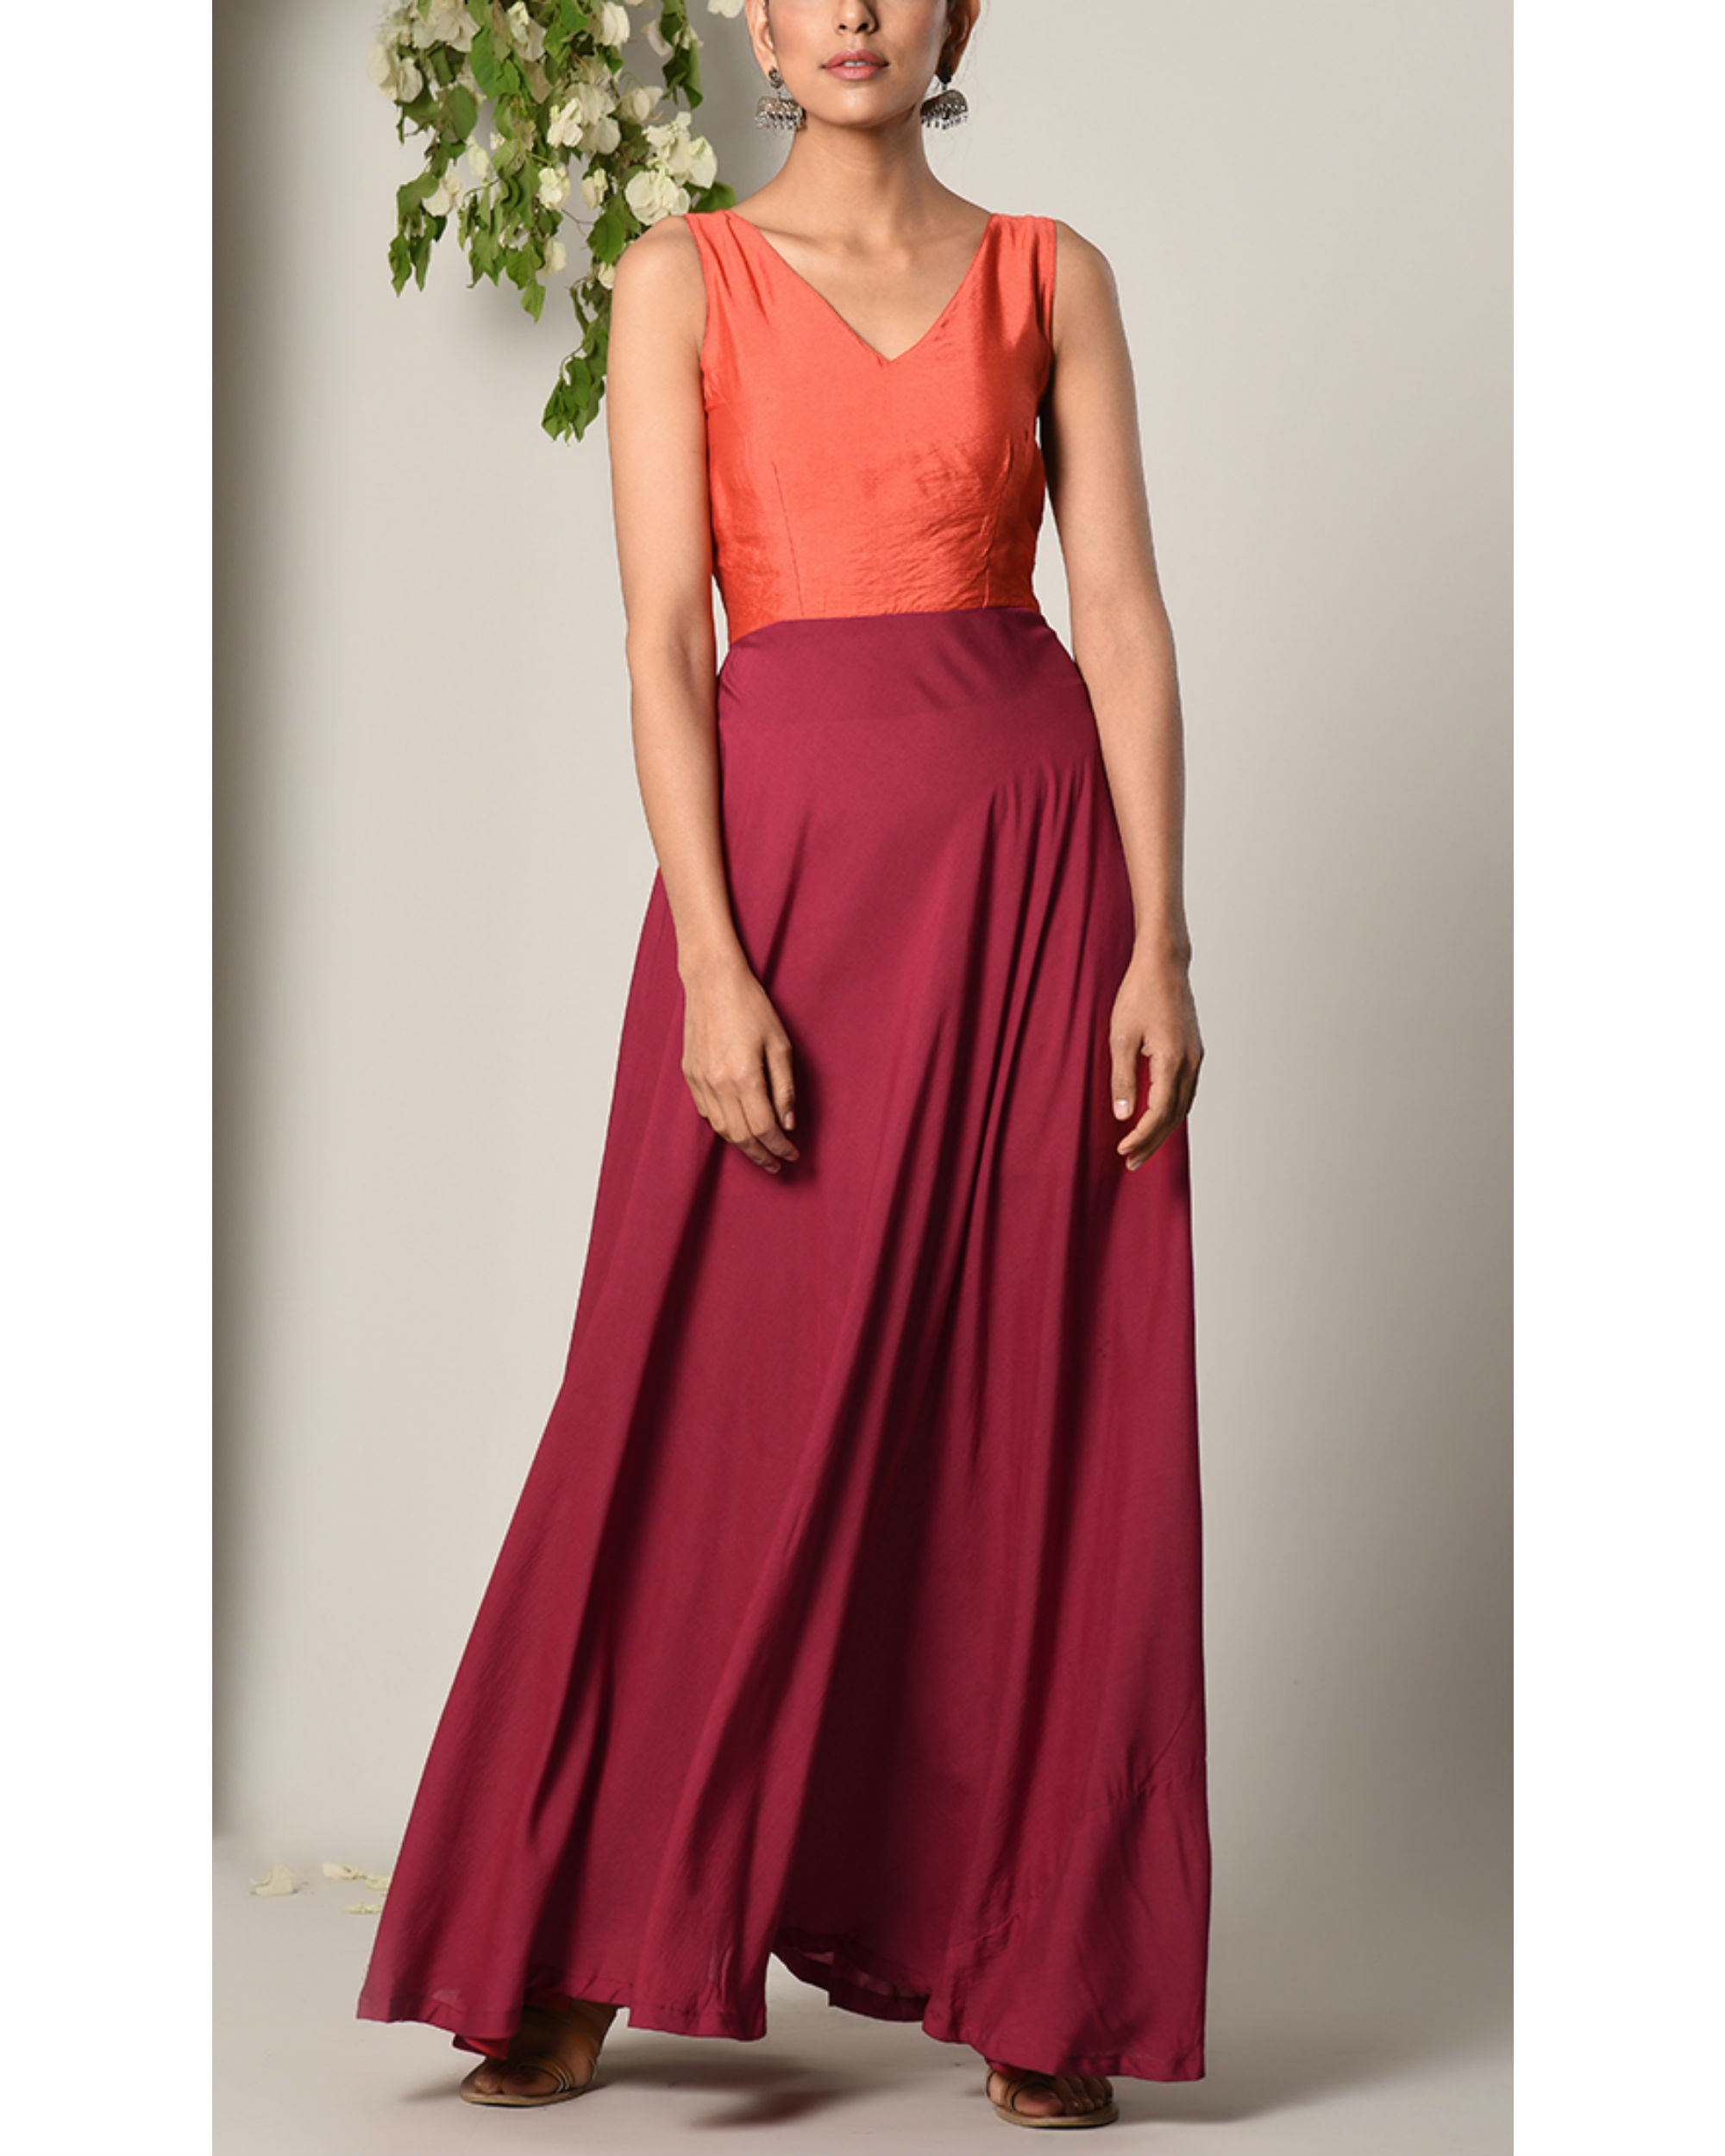 Orange and maroon colour block dress